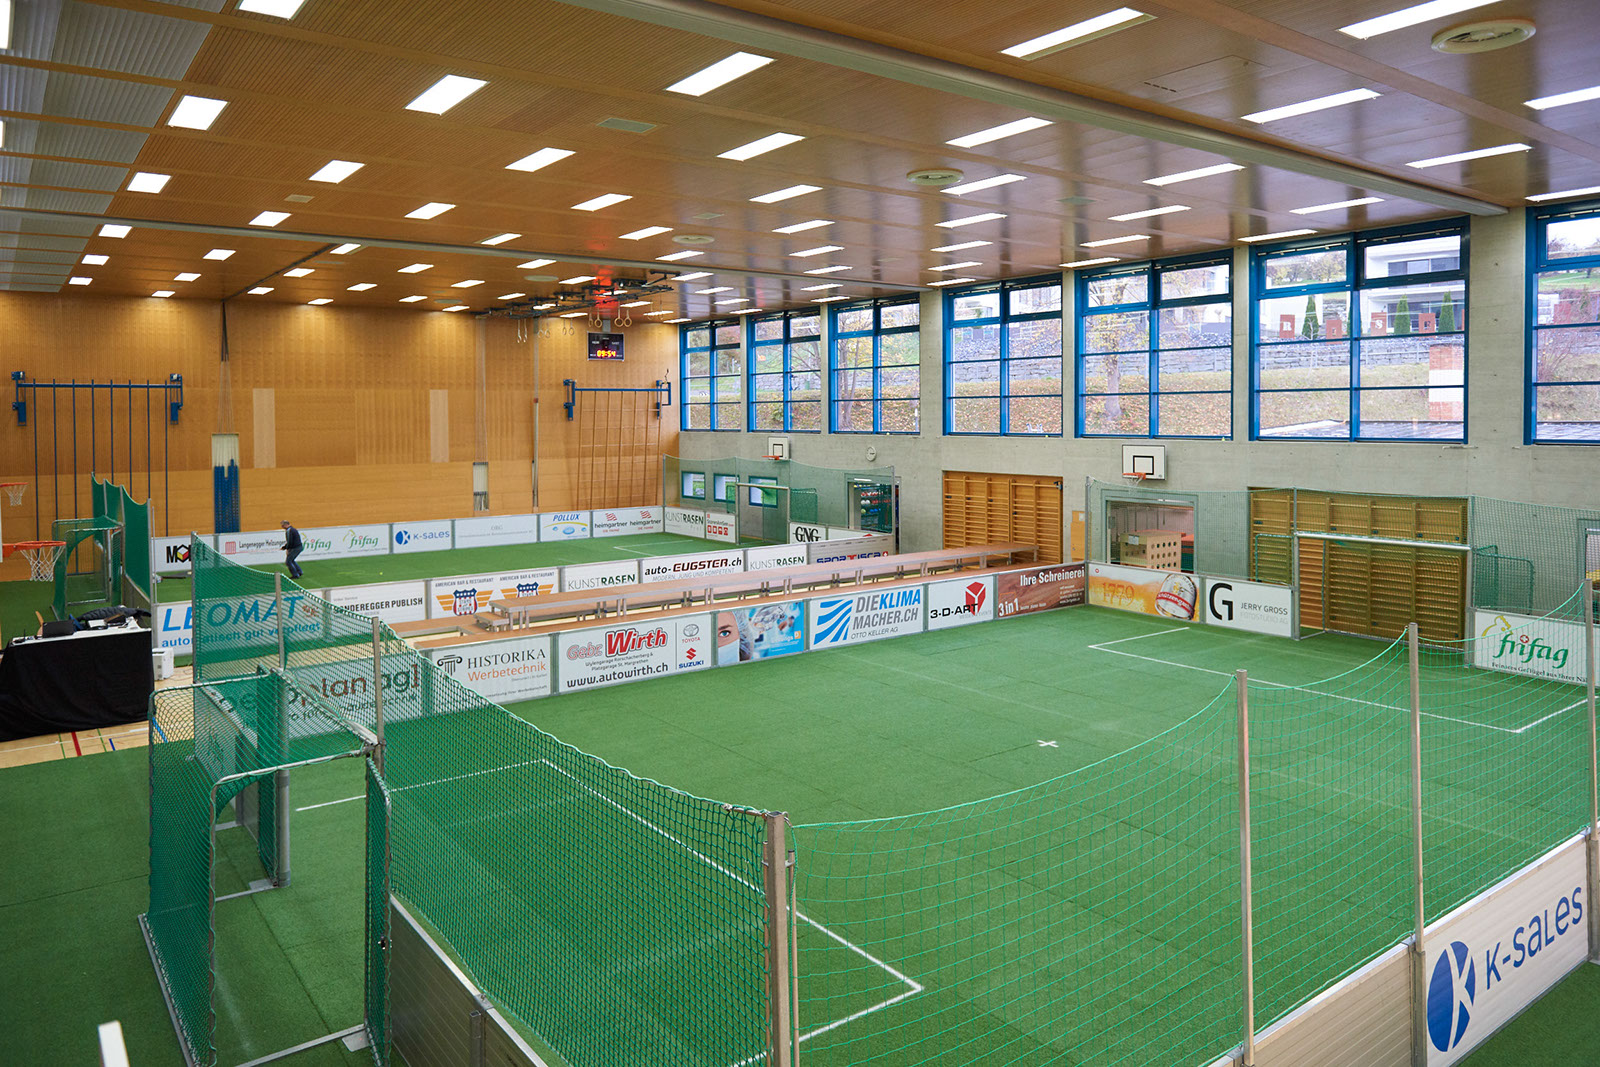 Bodensee-Cup_20171110_162115.jpg